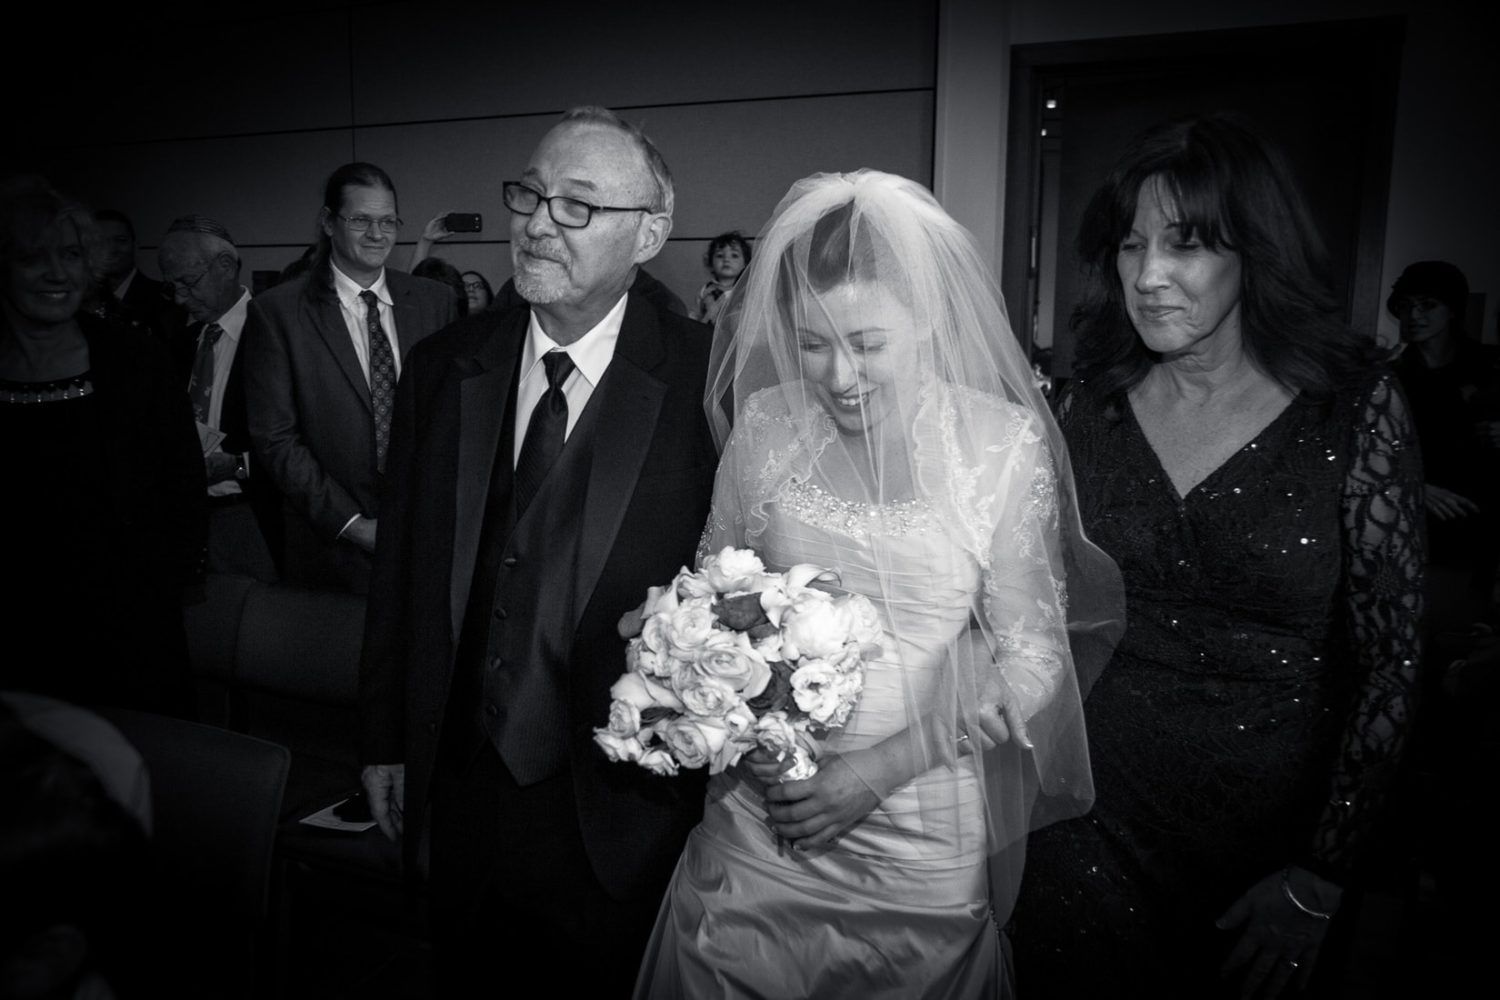 The father of the bride walks his daughter down the while at her wedding